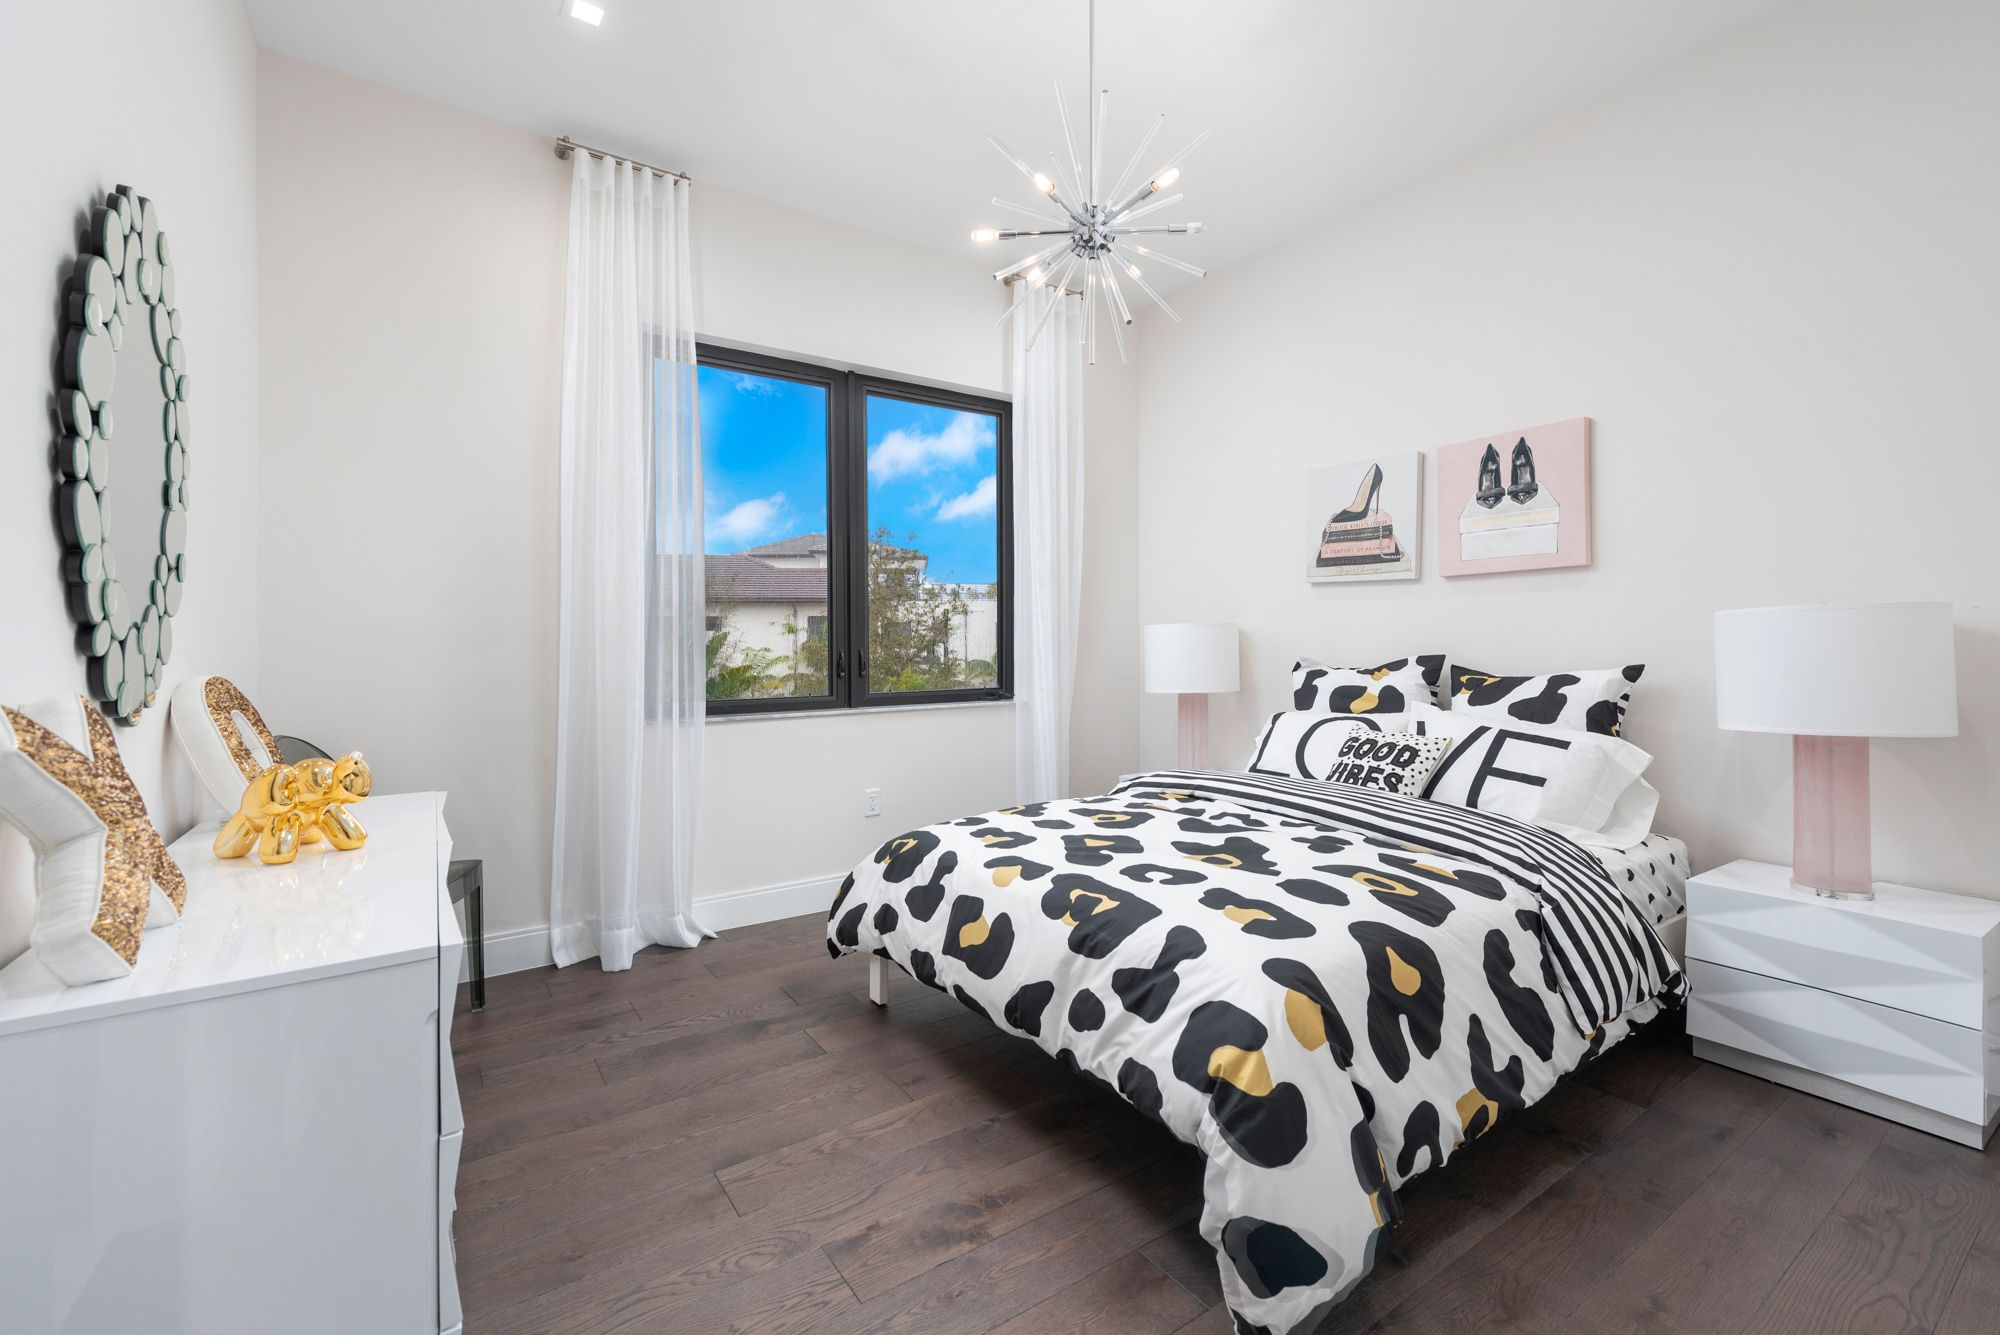 Bedroom featured in the Capri C Two Story By CC Homes in Miami-Dade County, FL